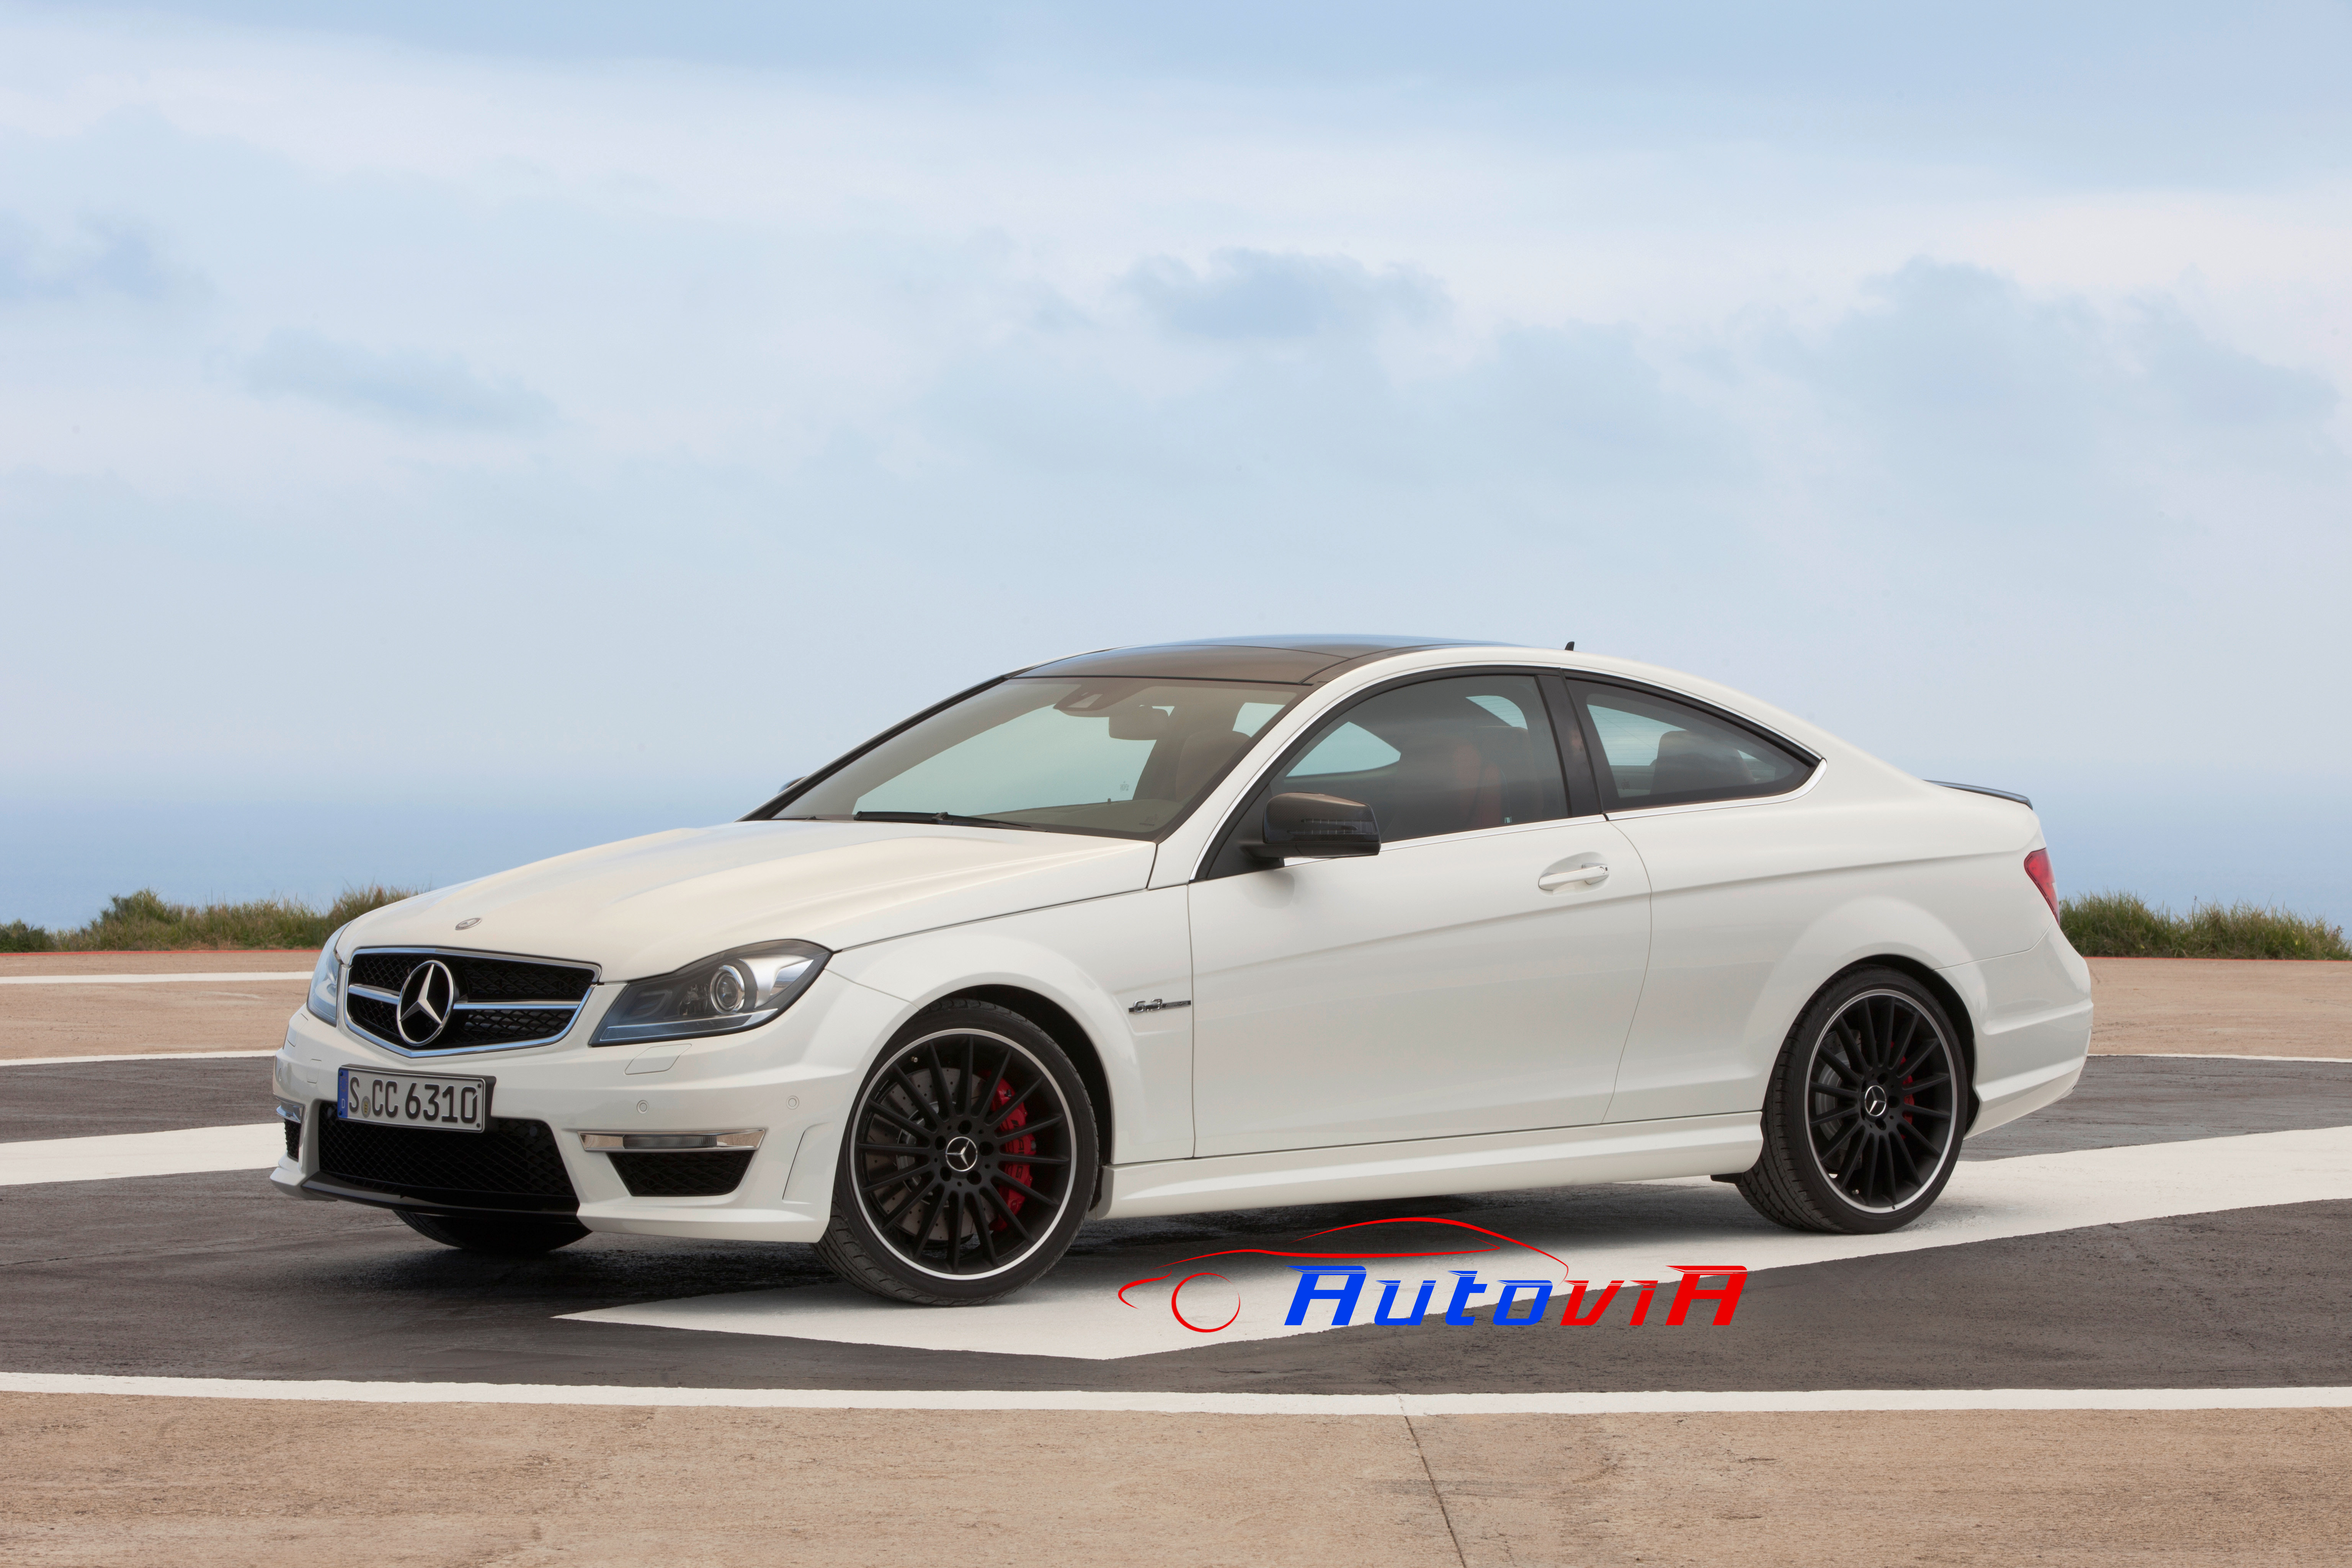 Mercedes benz clase c coup c 63 amg exterior 07 for Mercedes benz clase c